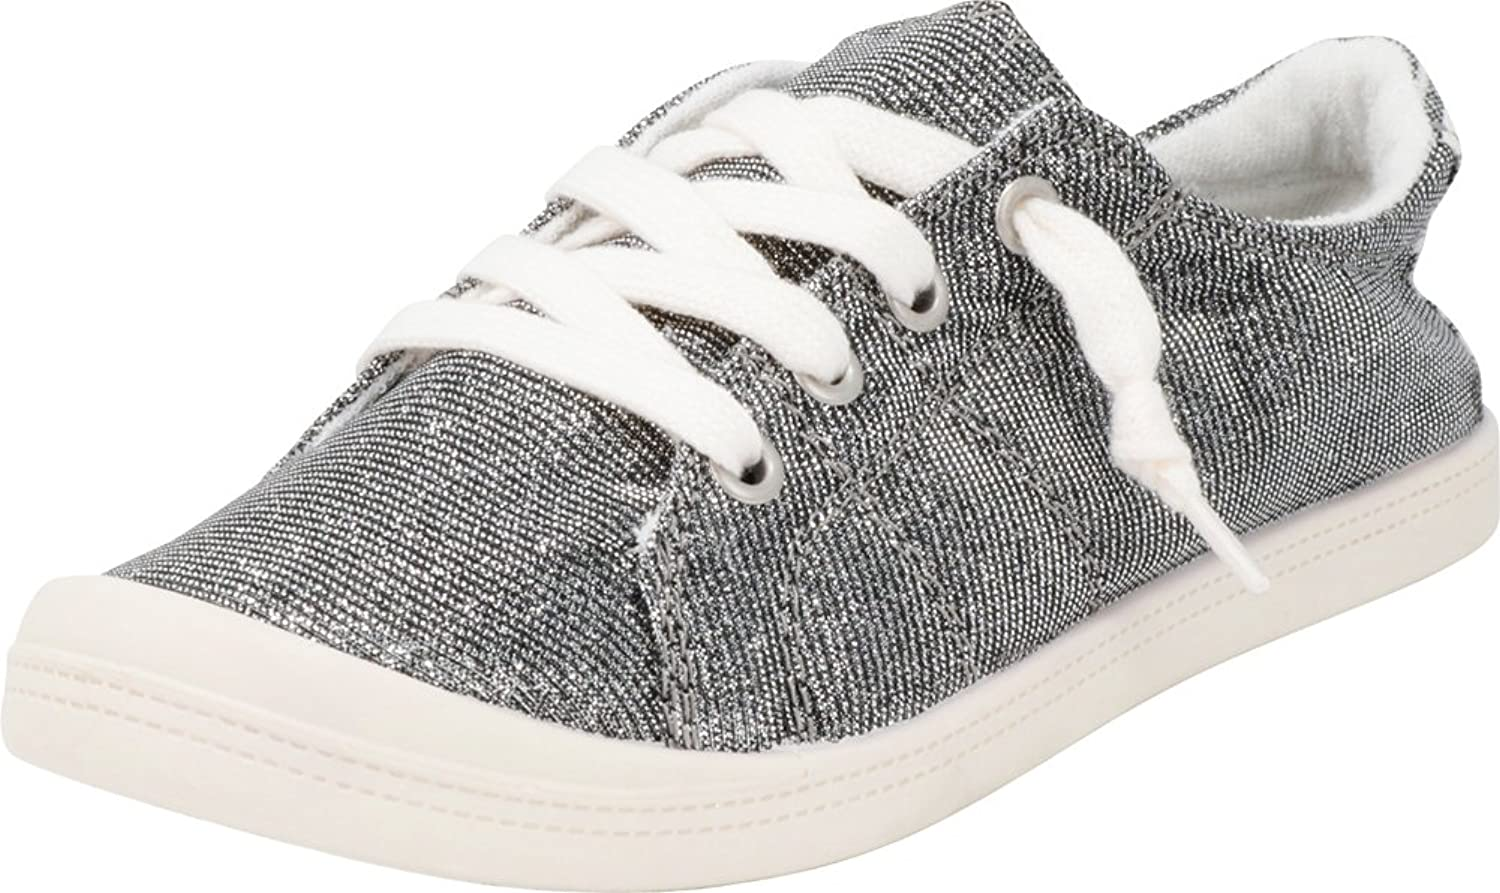 Cambridge Select Women's Low Top Closed Round Toe Slip-On No Tie Stretch Elastic Lace Fashion Sneaker